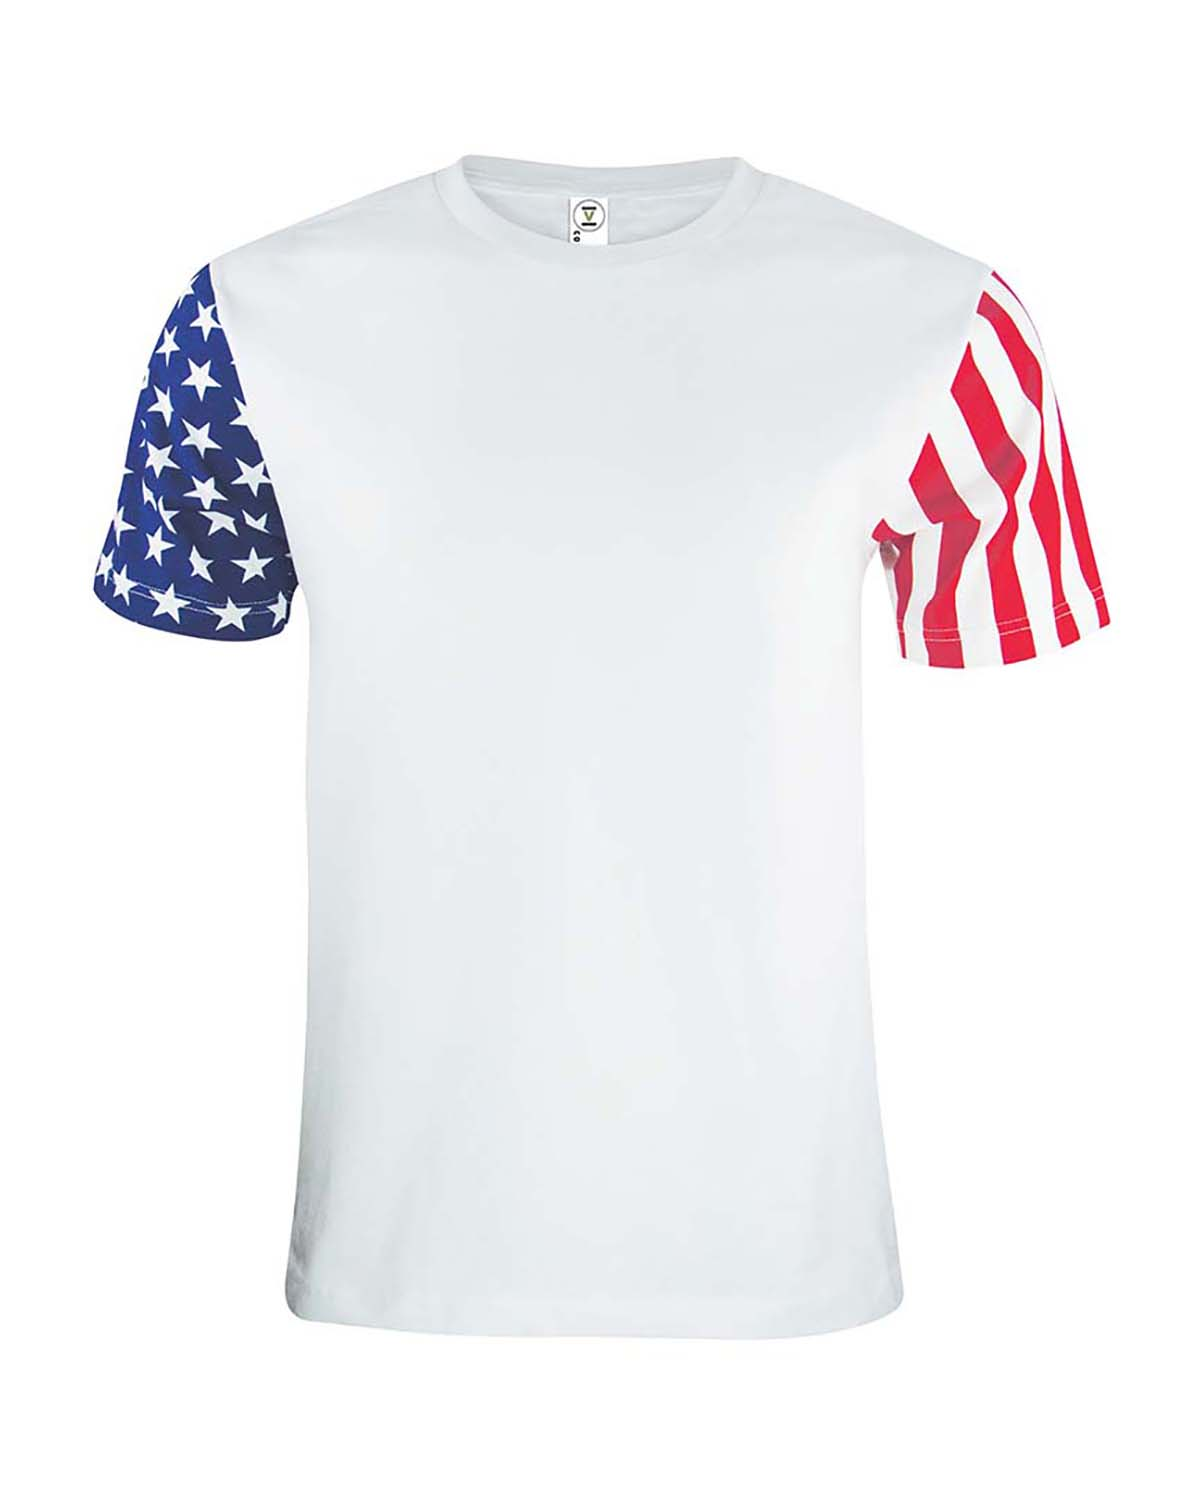 Men's Stars & Stripes T-Shirt